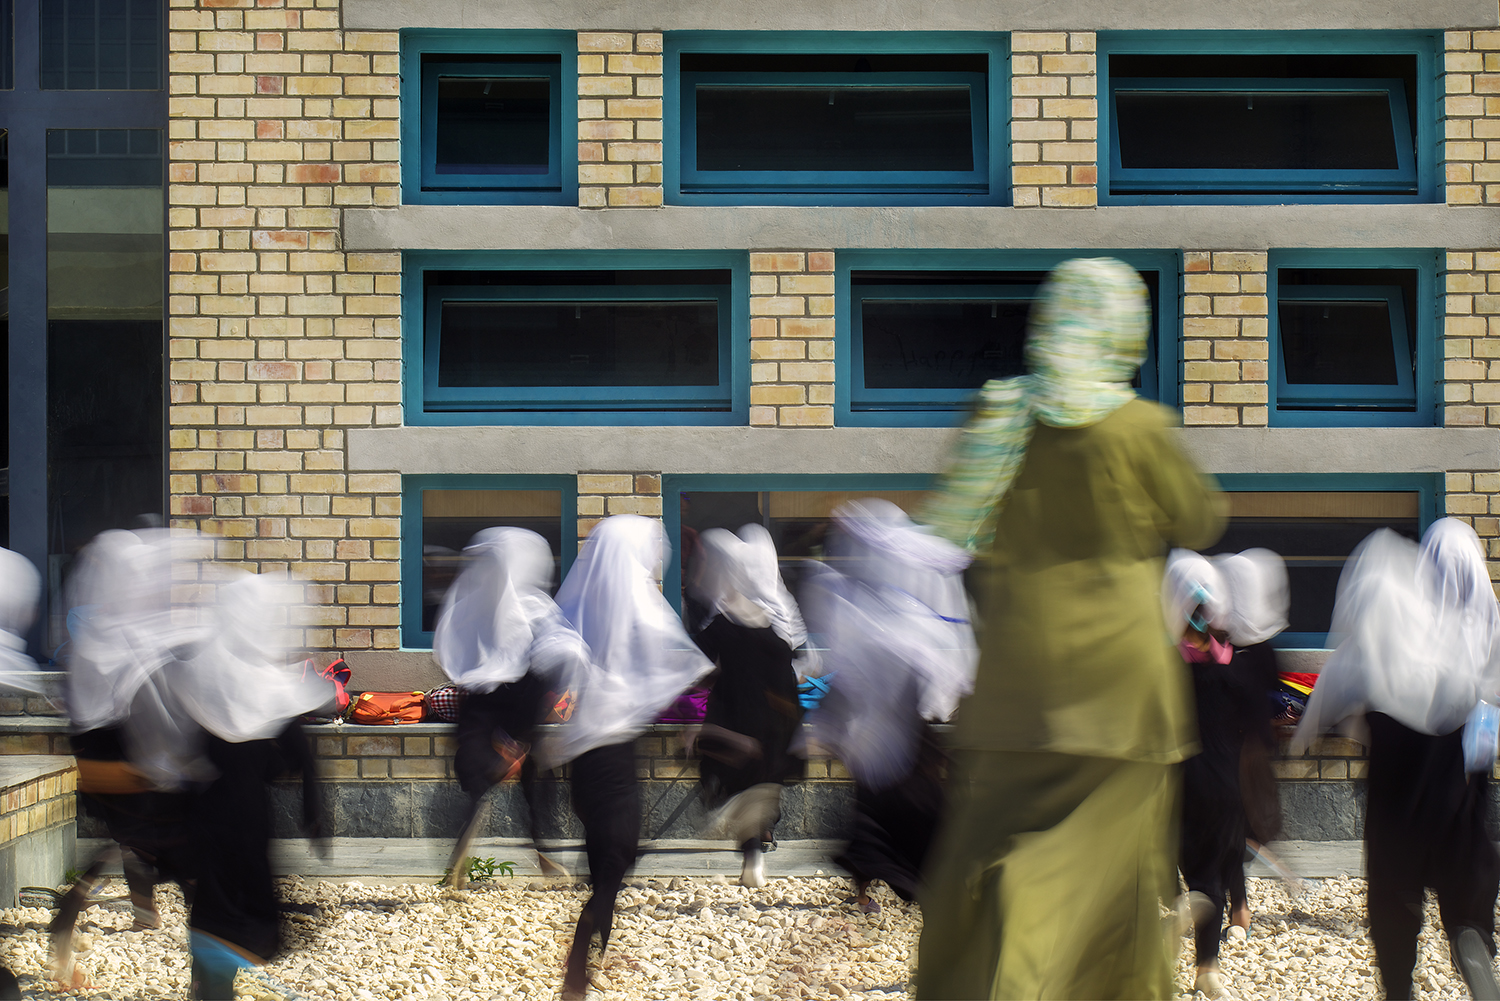 Goharkhatoon Girl School classroom blue windows@Nic Lehoux.jpg